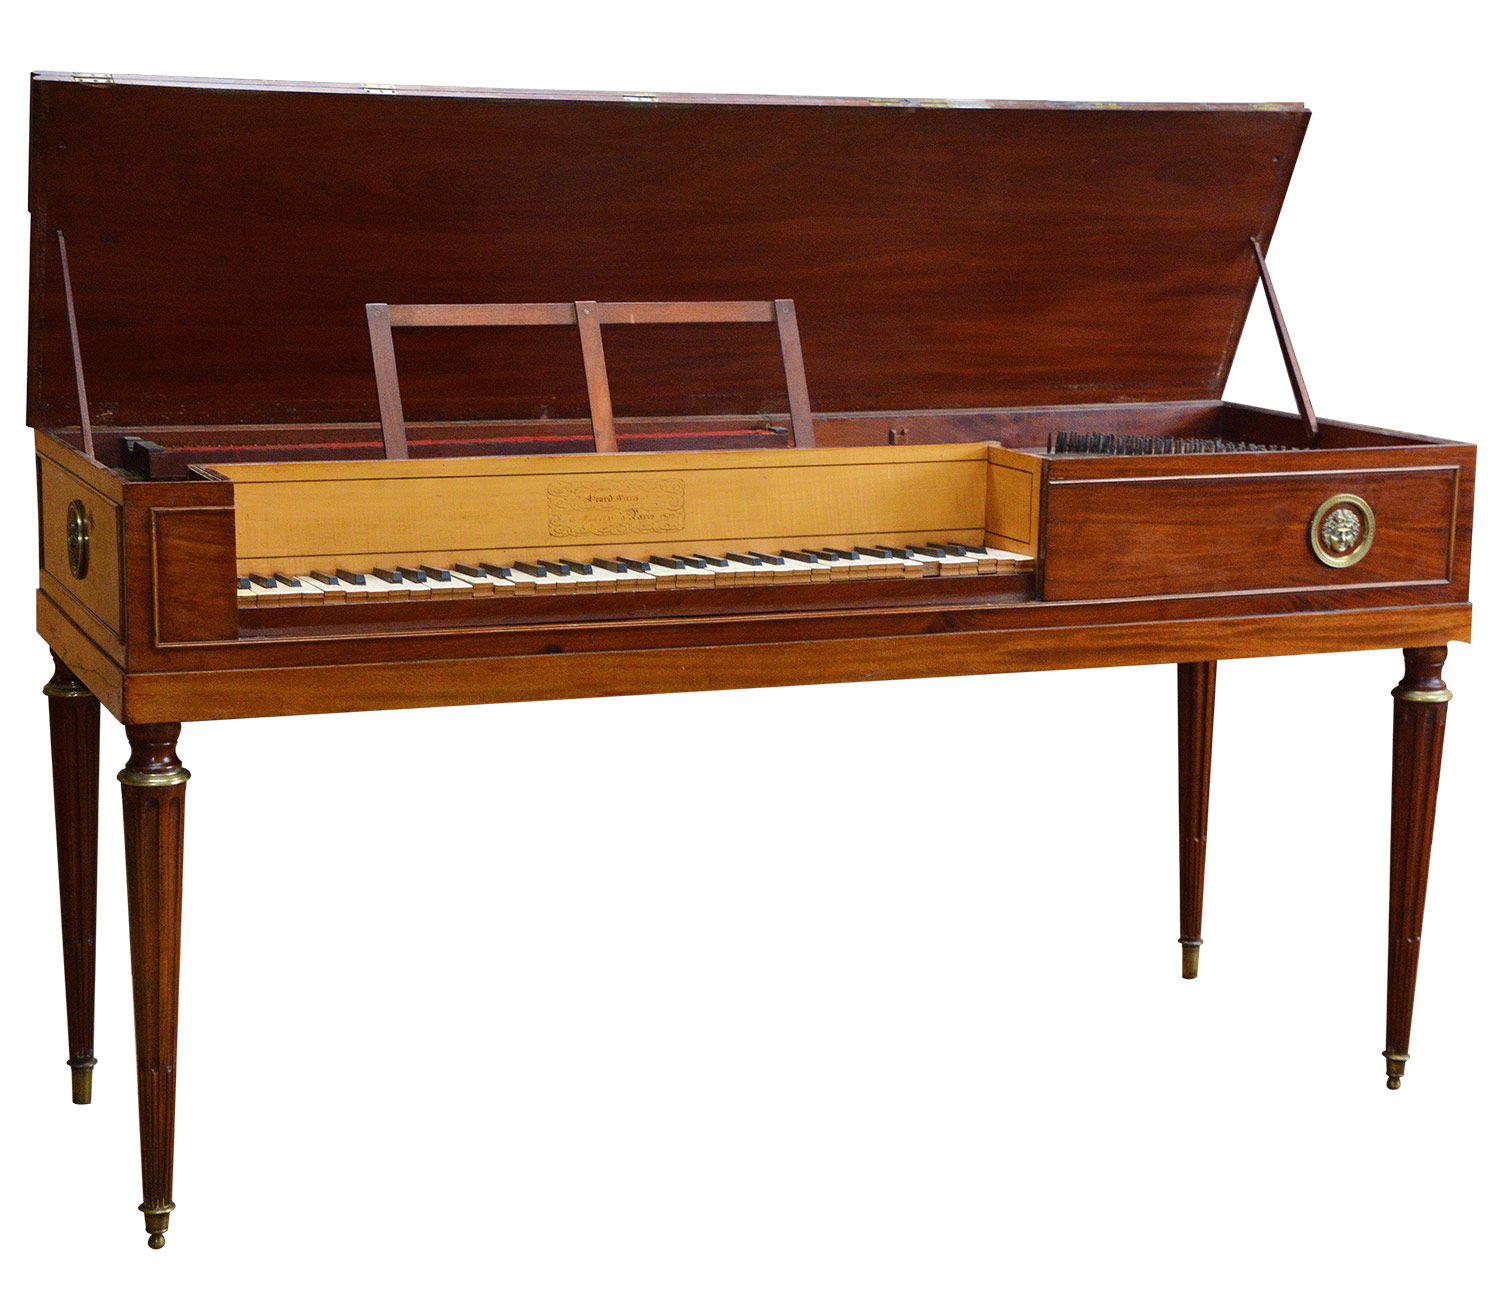 Erard Square piano